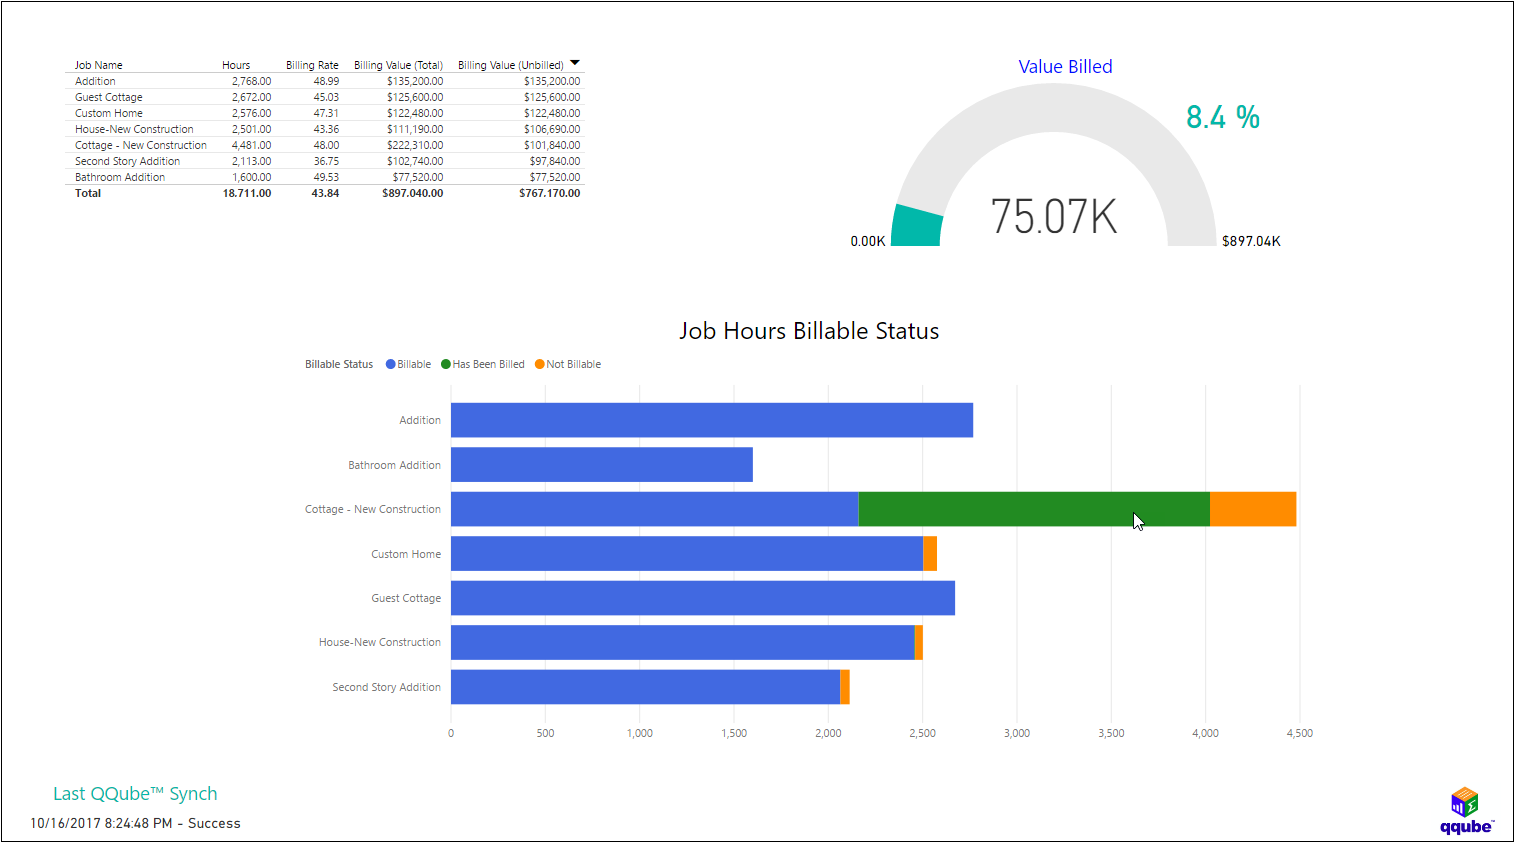 Power BI and QQube - Time Tracking Billable Hours